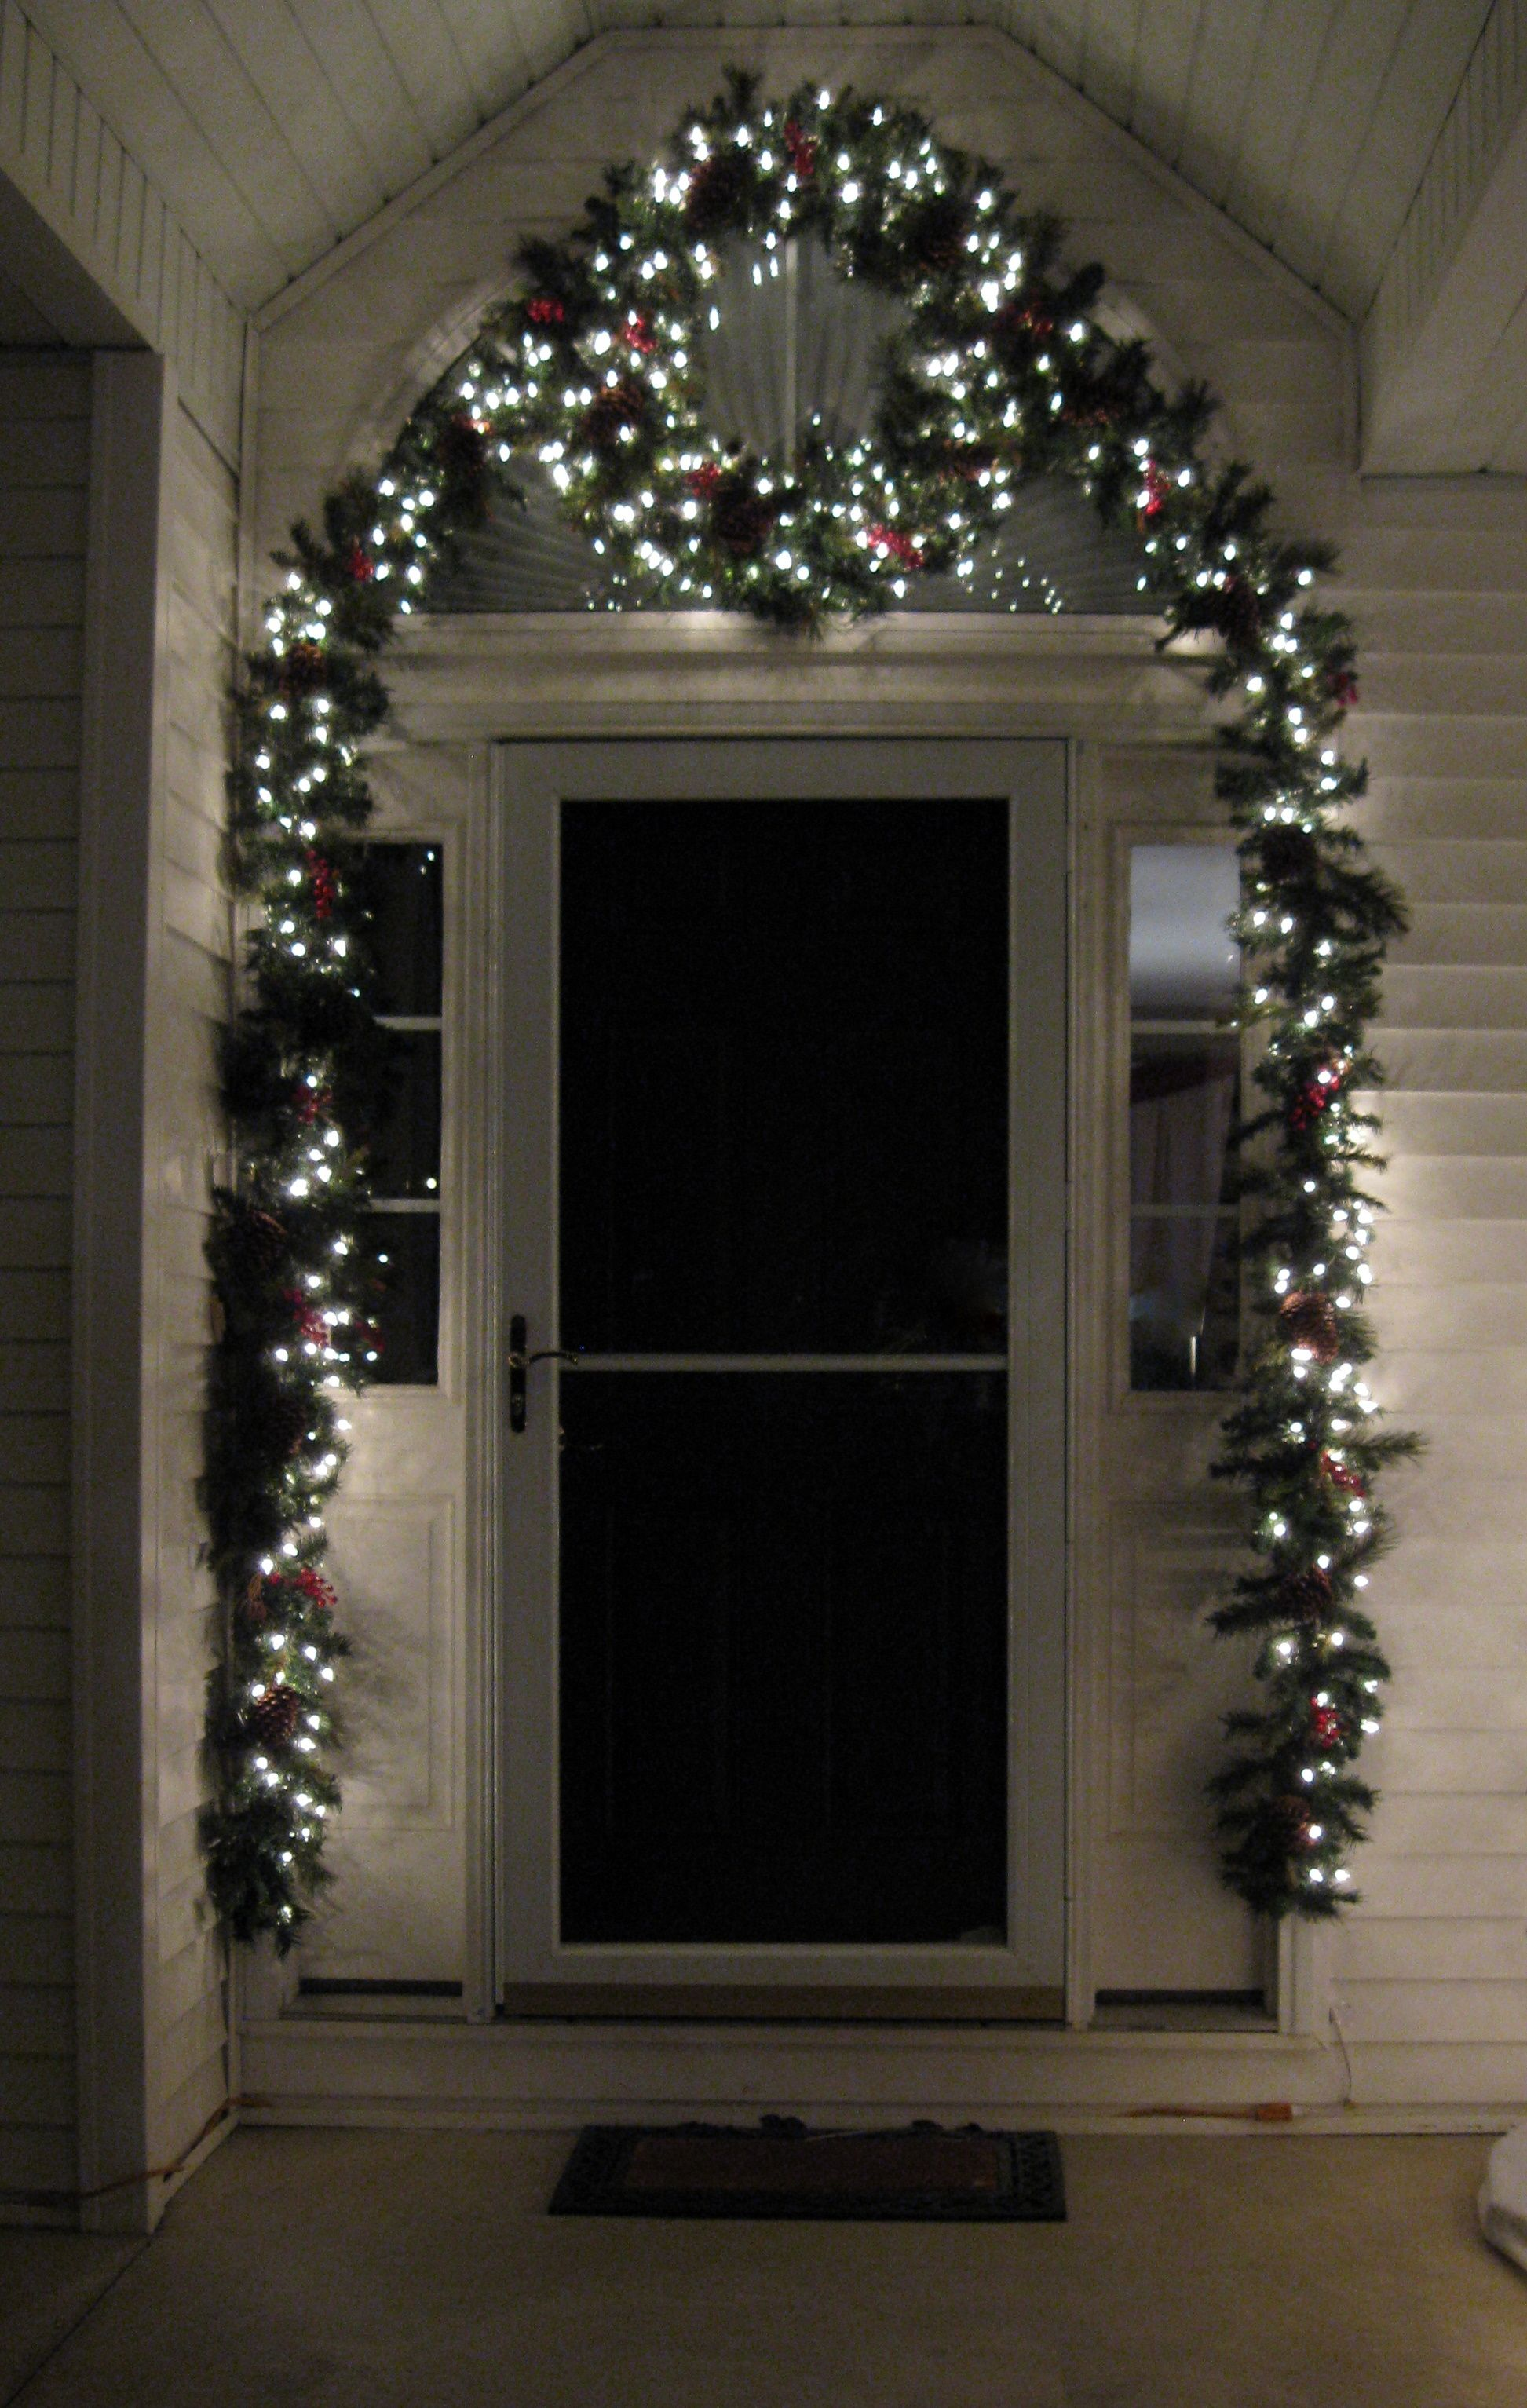 Front door christmas lights - Our Front Door Christmas Decorations Garland And A Wreath With Christmas Lights A Very